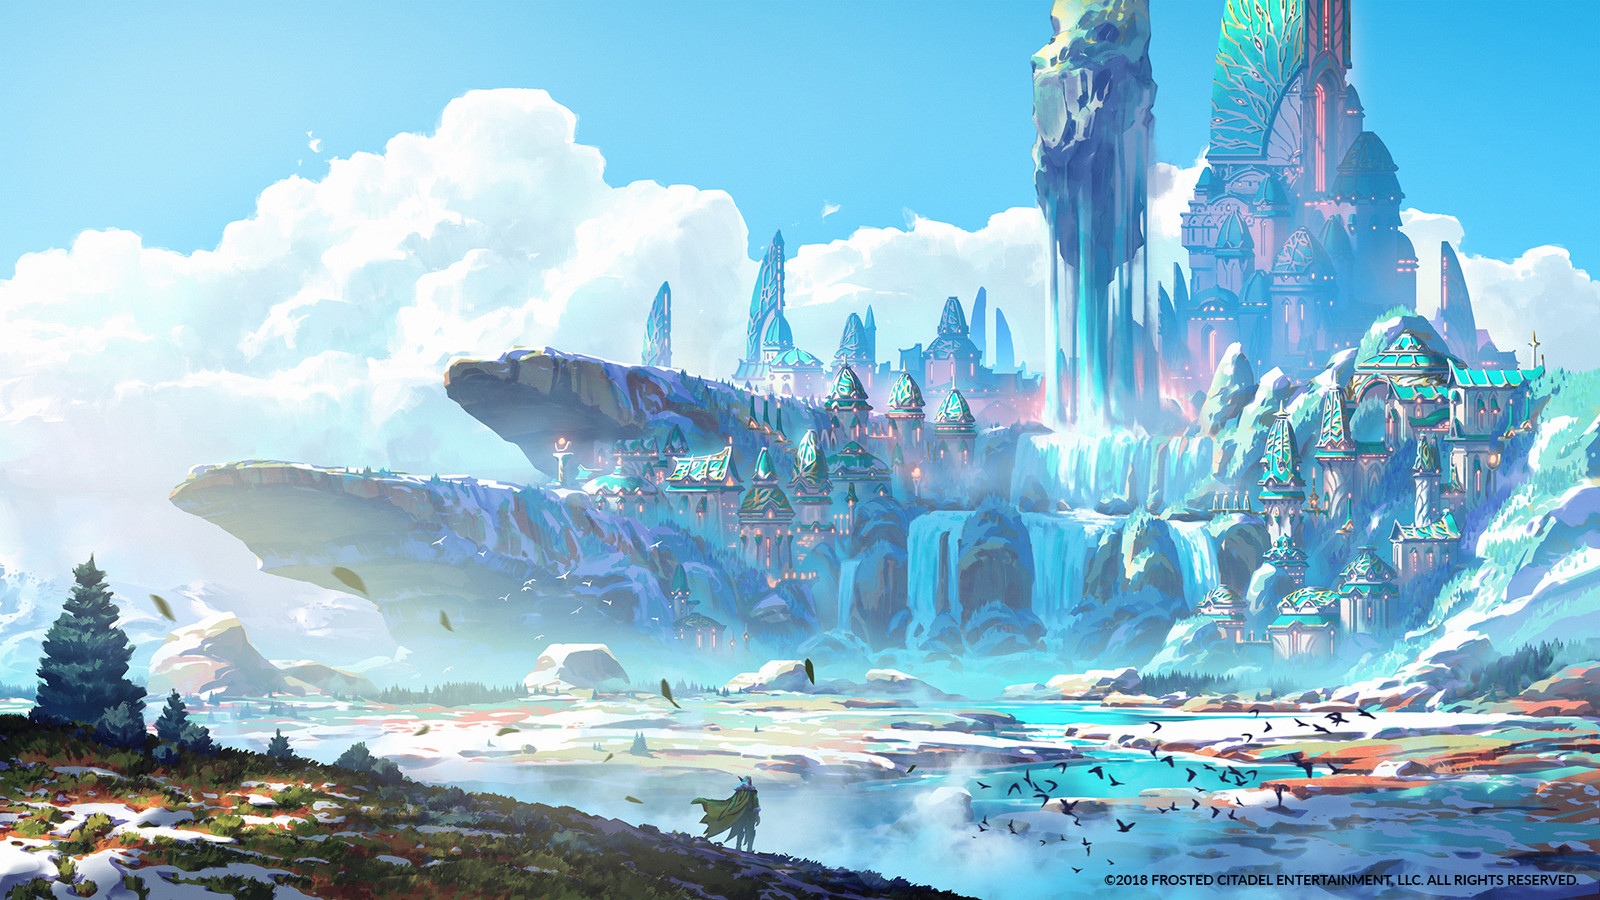 Frosted Citadel